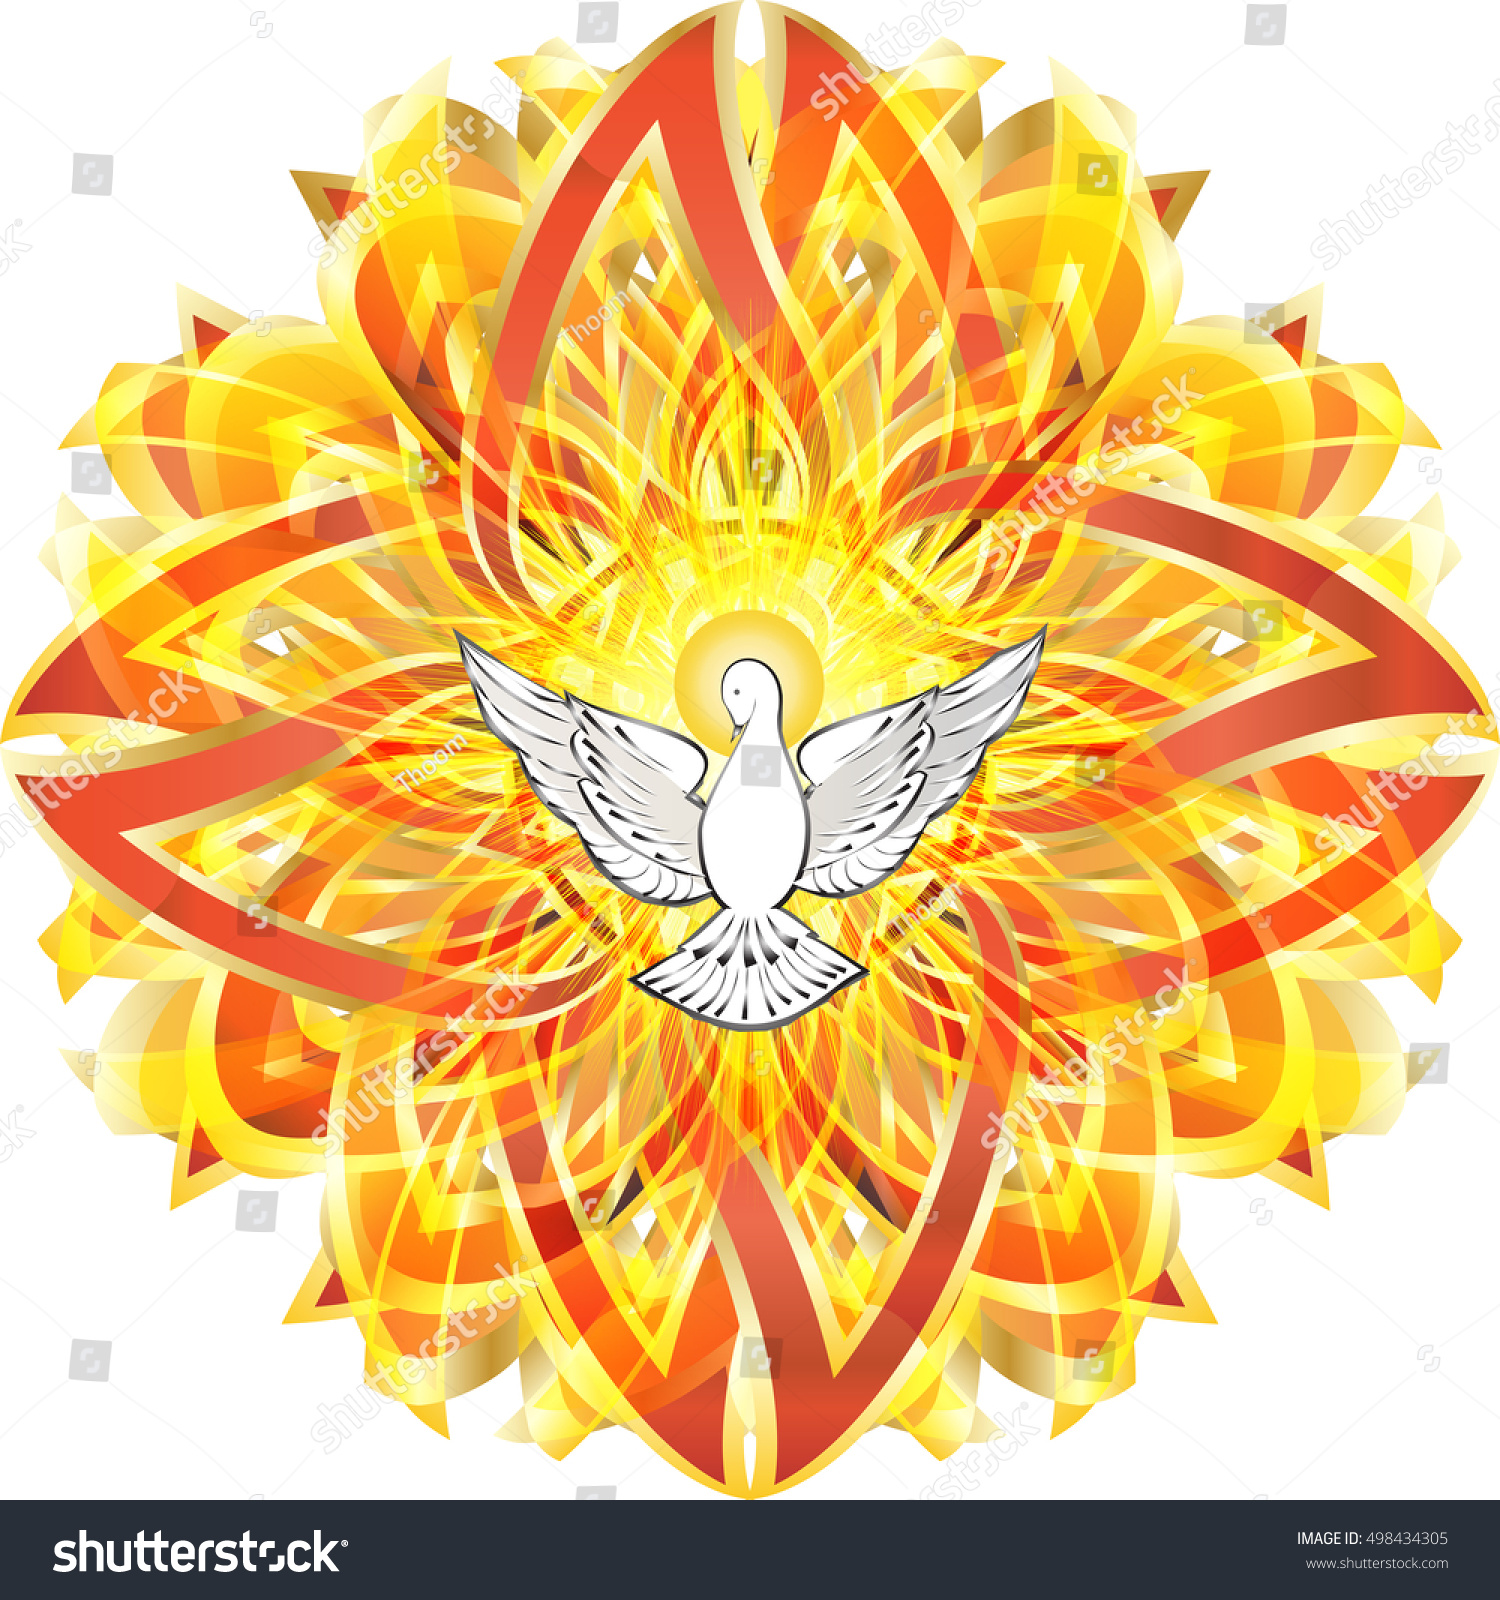 Seven Gifts Holy Spirit Catholic Clip Art